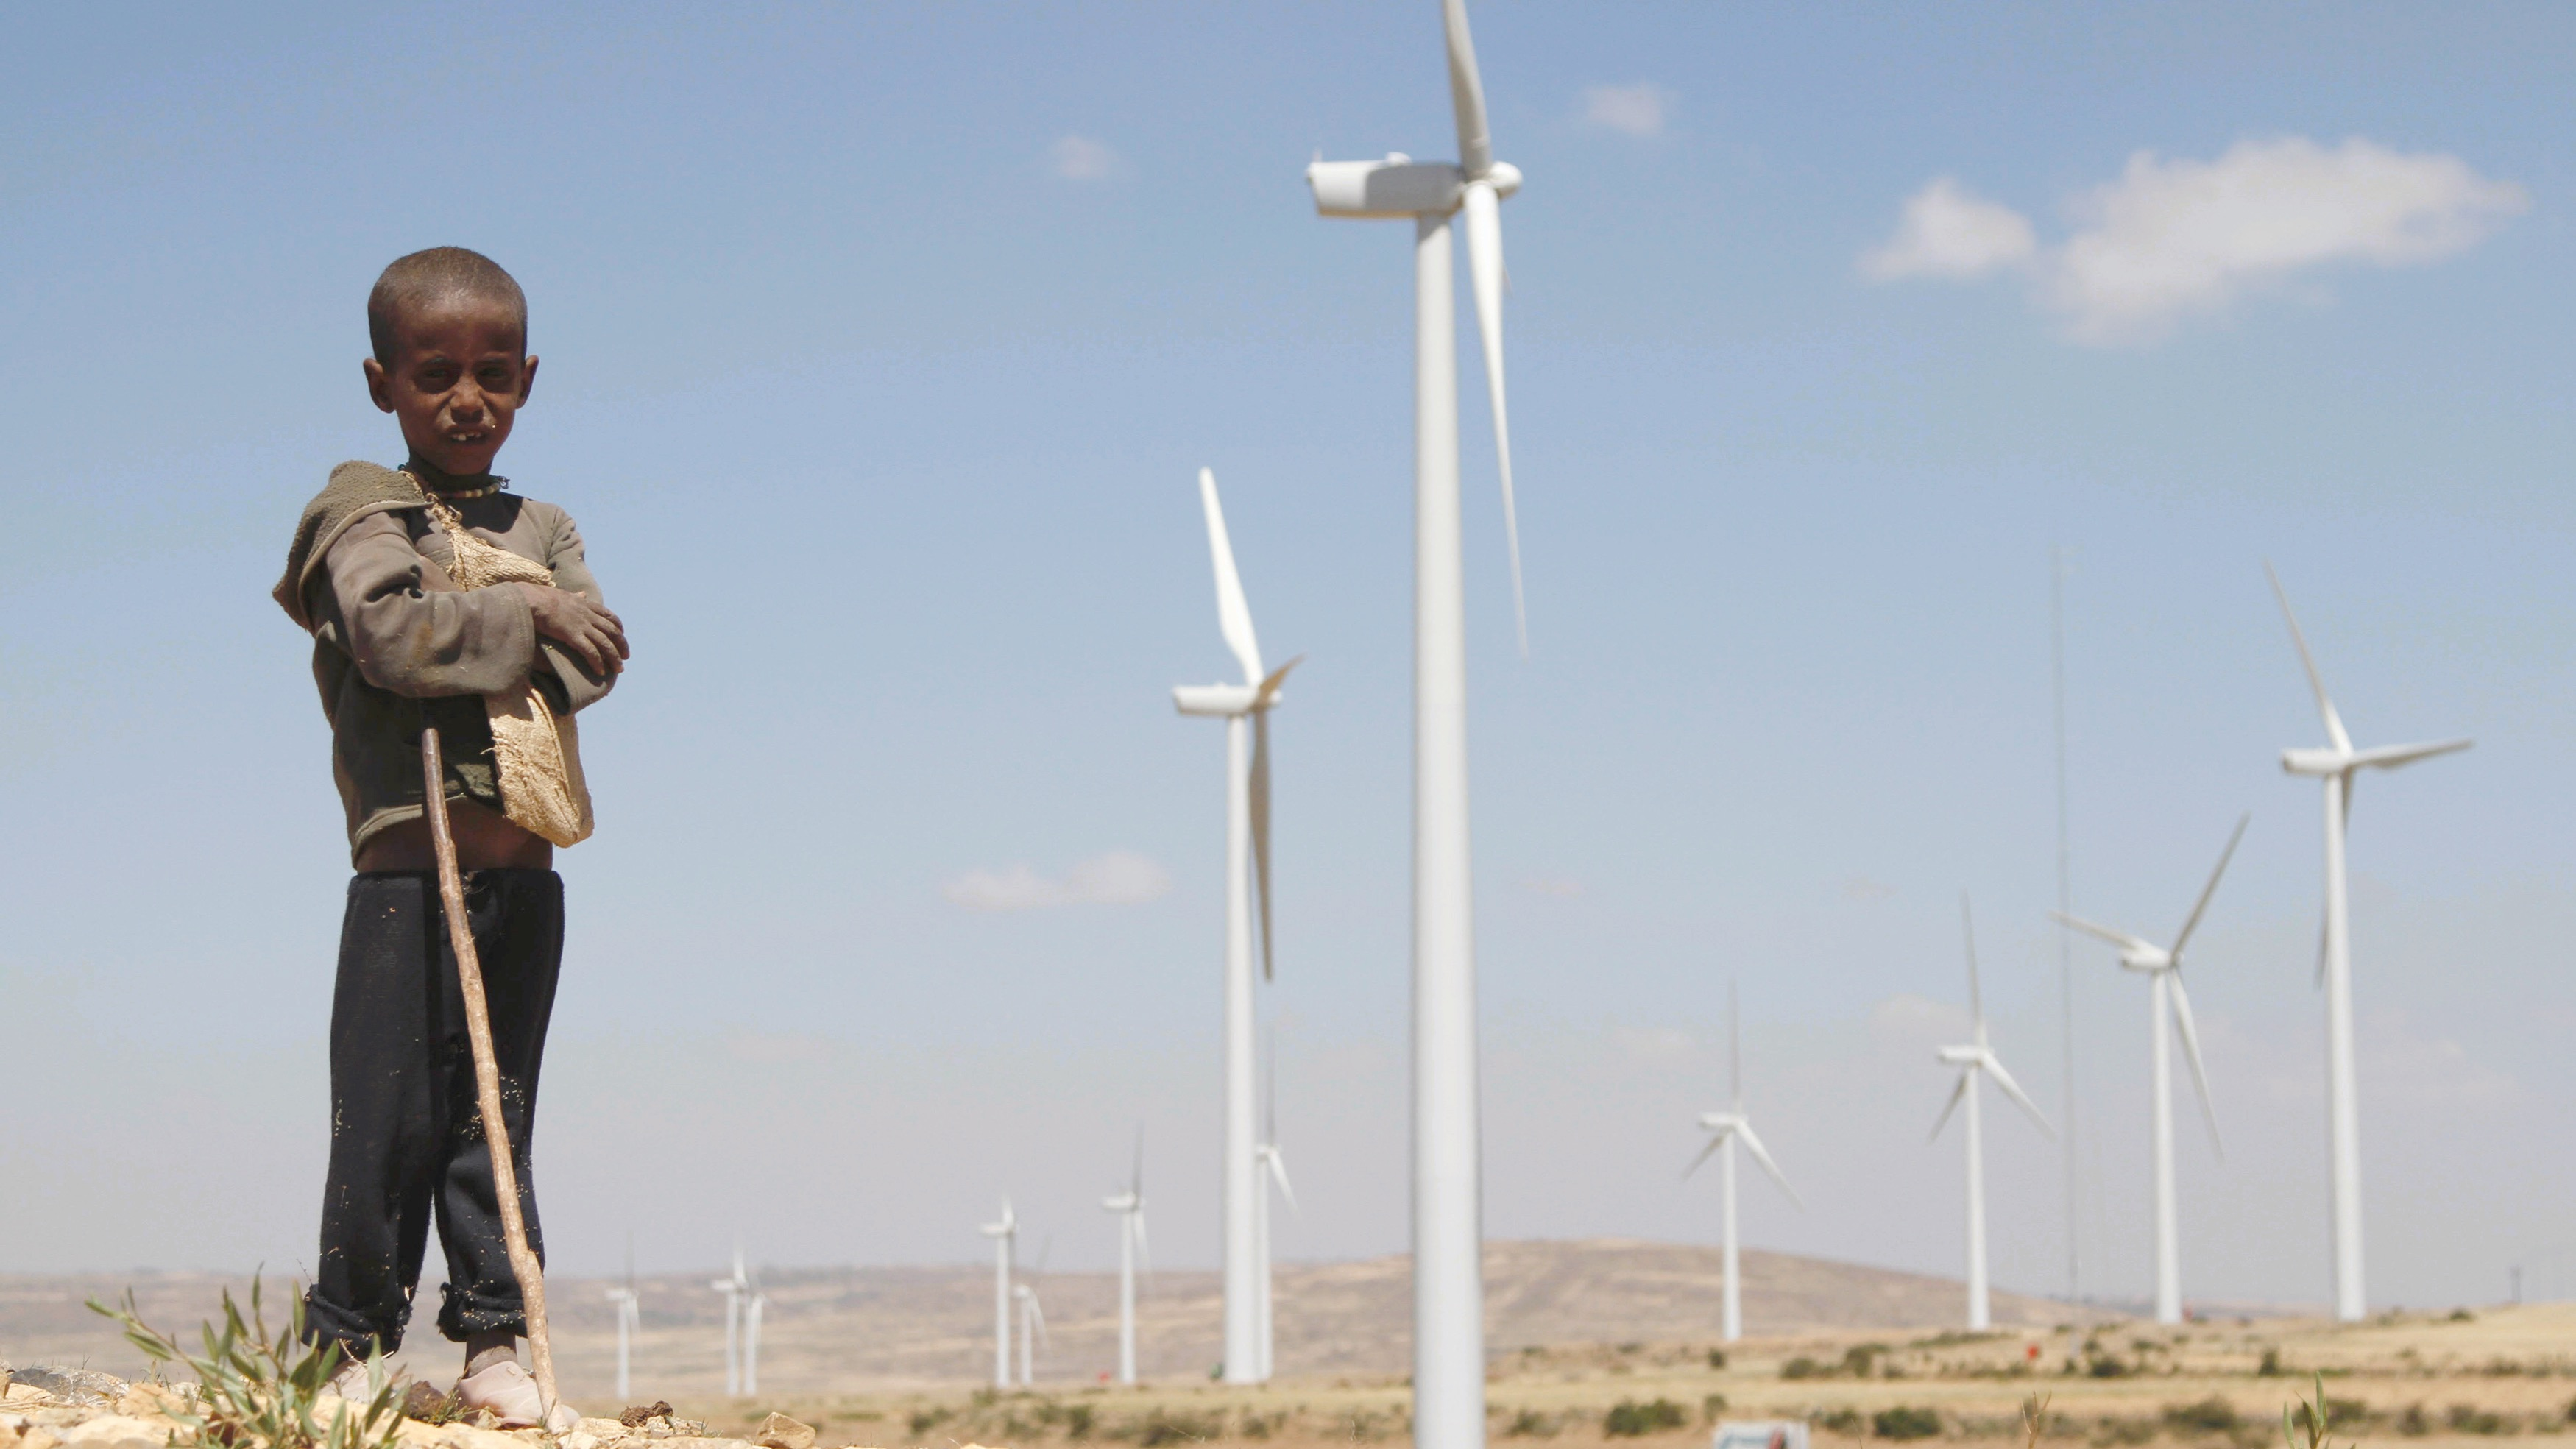 A boy stands in front of wind turbines at the Ashegoda Wind Farm, near a village in Mekelle, Tigray, 780 km (485 miles) north of Addis Ababa October 25, 2013. Africa's biggest wind farm began production in Ethiopia on Saturday, aiding efforts to diversify electricity generation from hydropower plants and help the country become a major regional exporter of energy. Picture taken October 25, 2013. REUTERS/Kumerra Gemechu (ETHIOPIA - Tags: ENERGY BUSINESS ENVIRONMENT TPX IMAGES OF THE DAY) - RTX14PA1